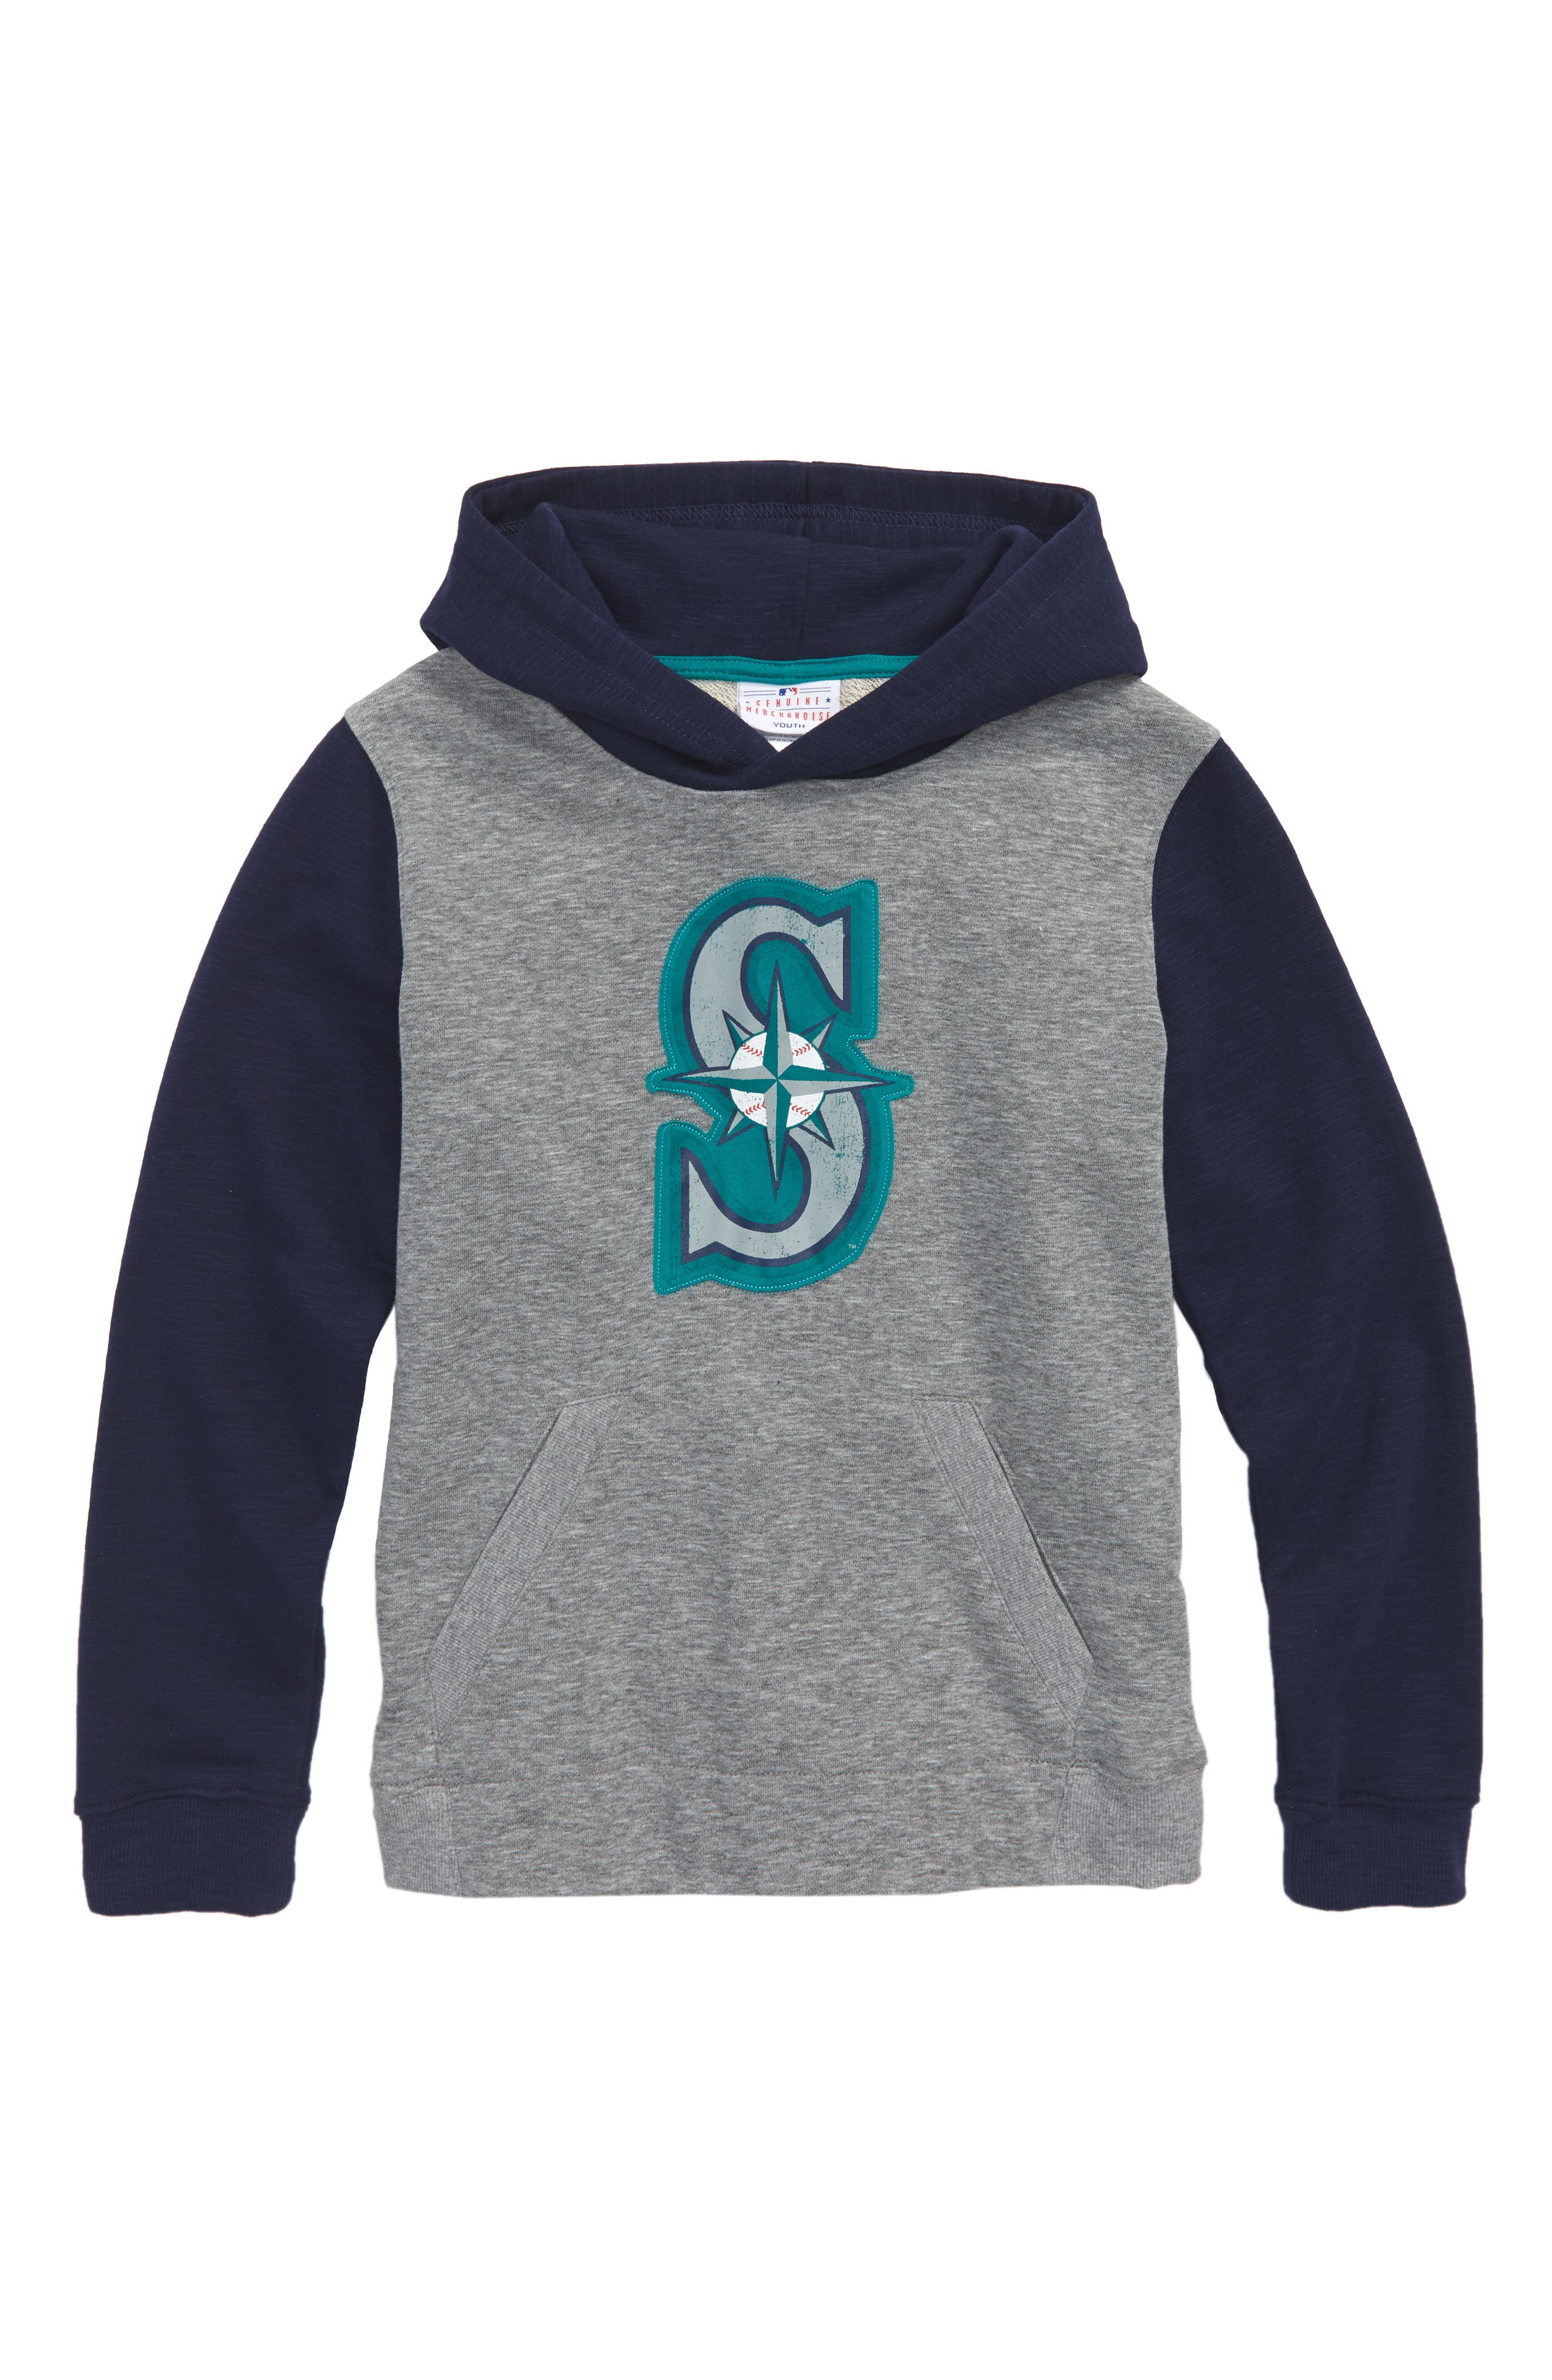 New Beginnings - Seattle Mariners Pullover Hoodie,                             Main thumbnail 1, color,                             020